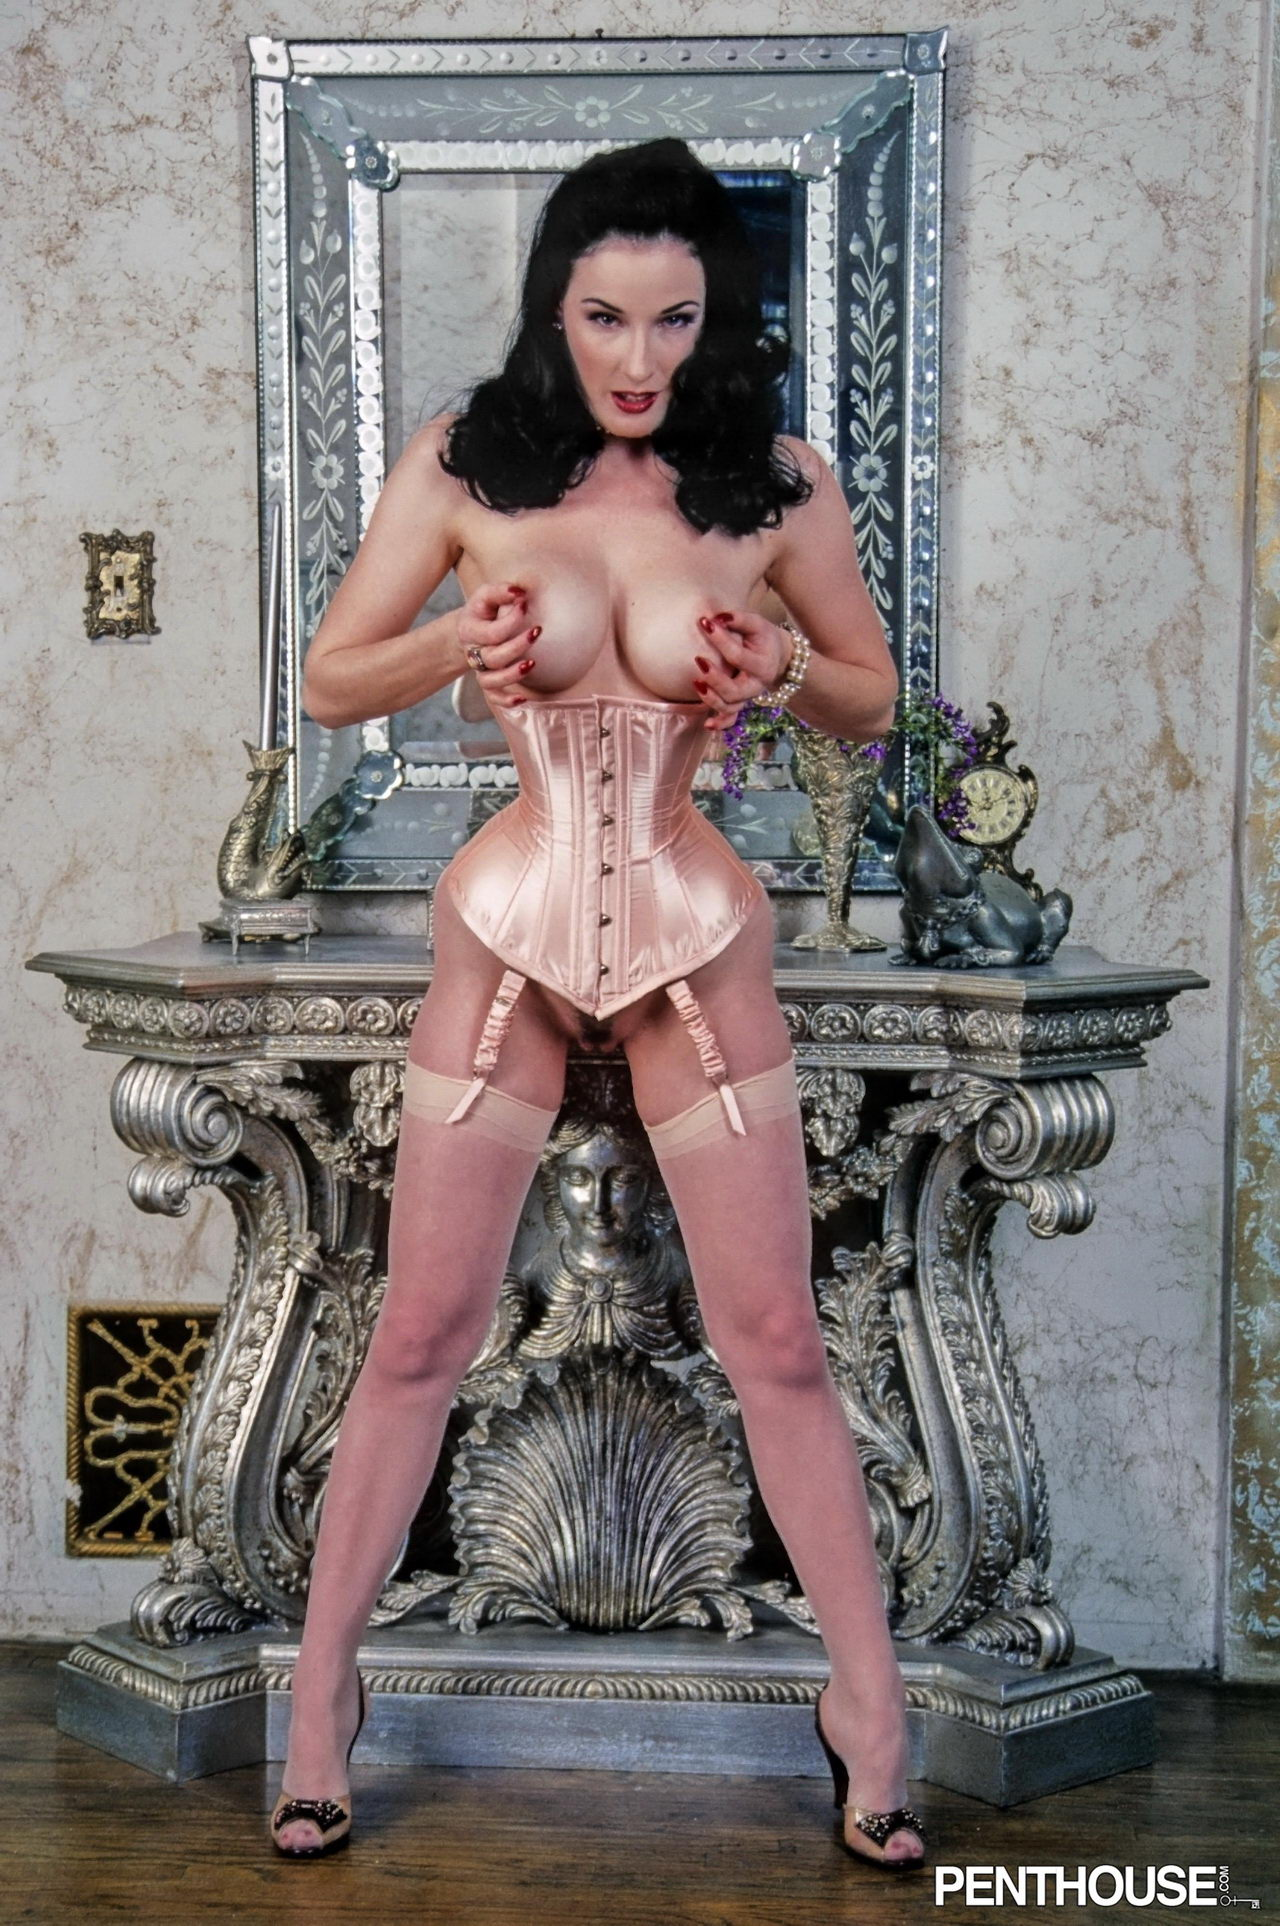 Similar situation. Dita von teese nude pussy are